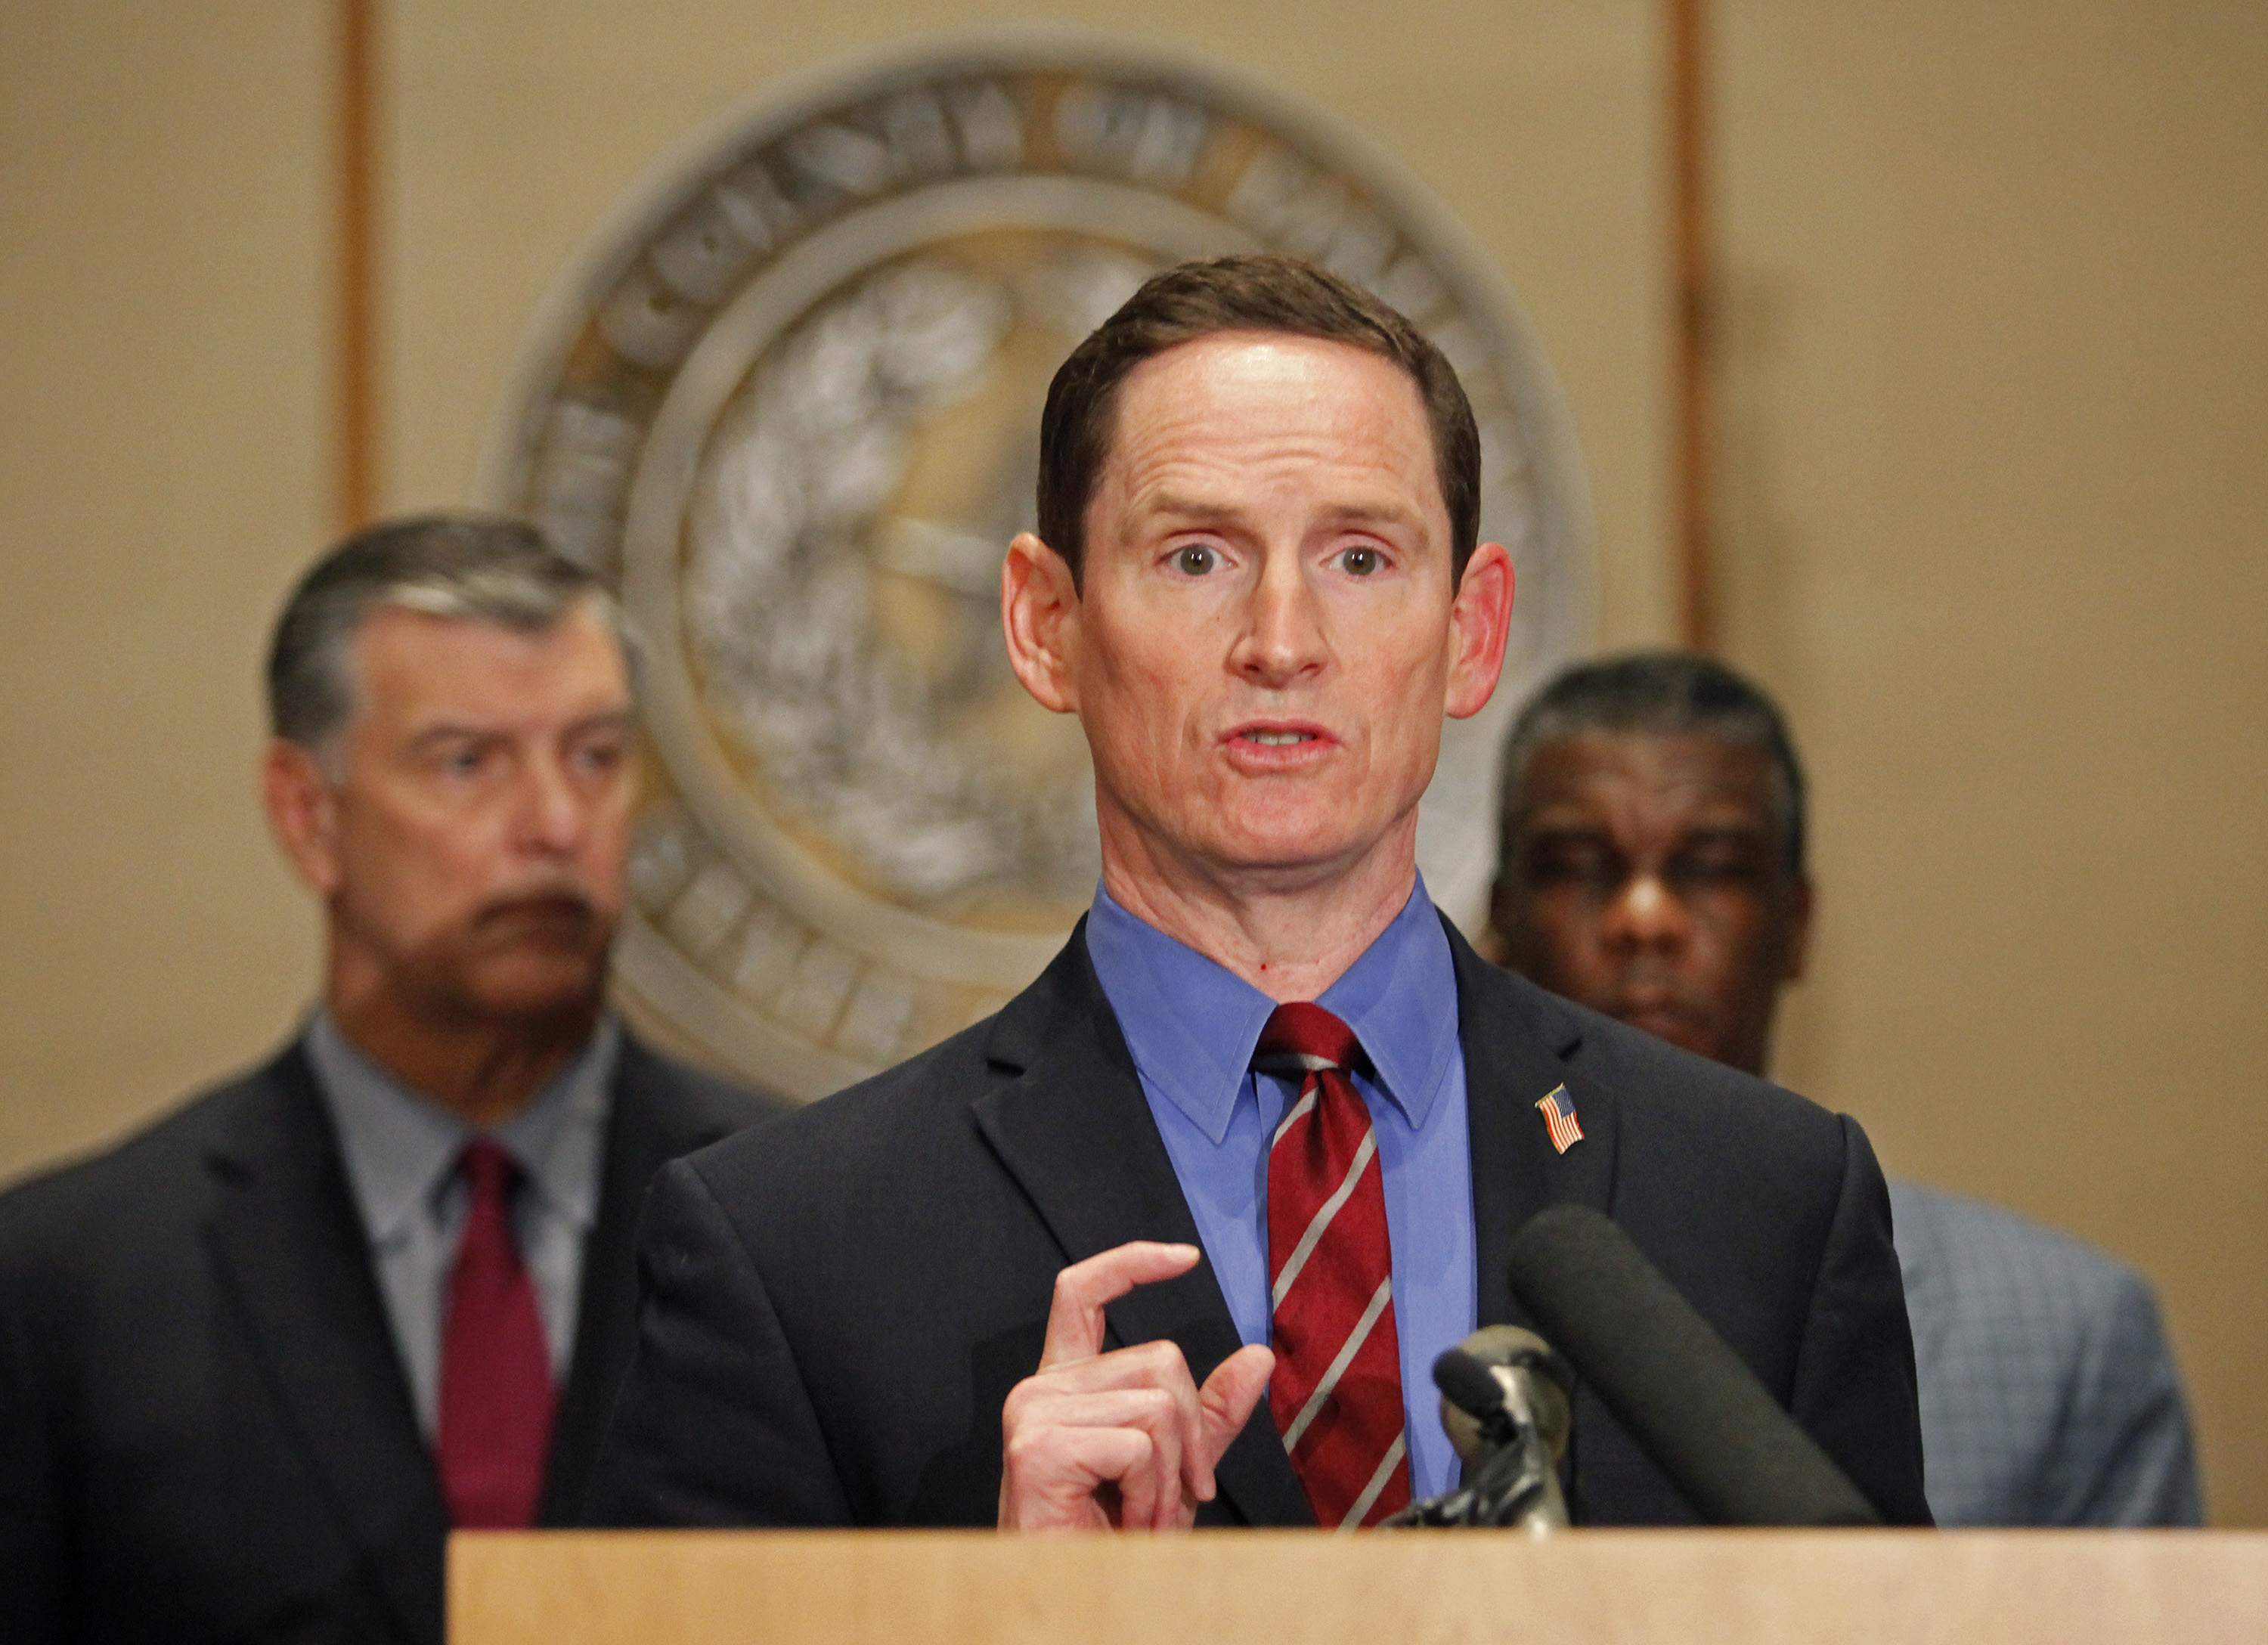 Dallas County judge Clay Jenkins, wearing a grey suit, blue shirt, and red tie, standing at a podium.